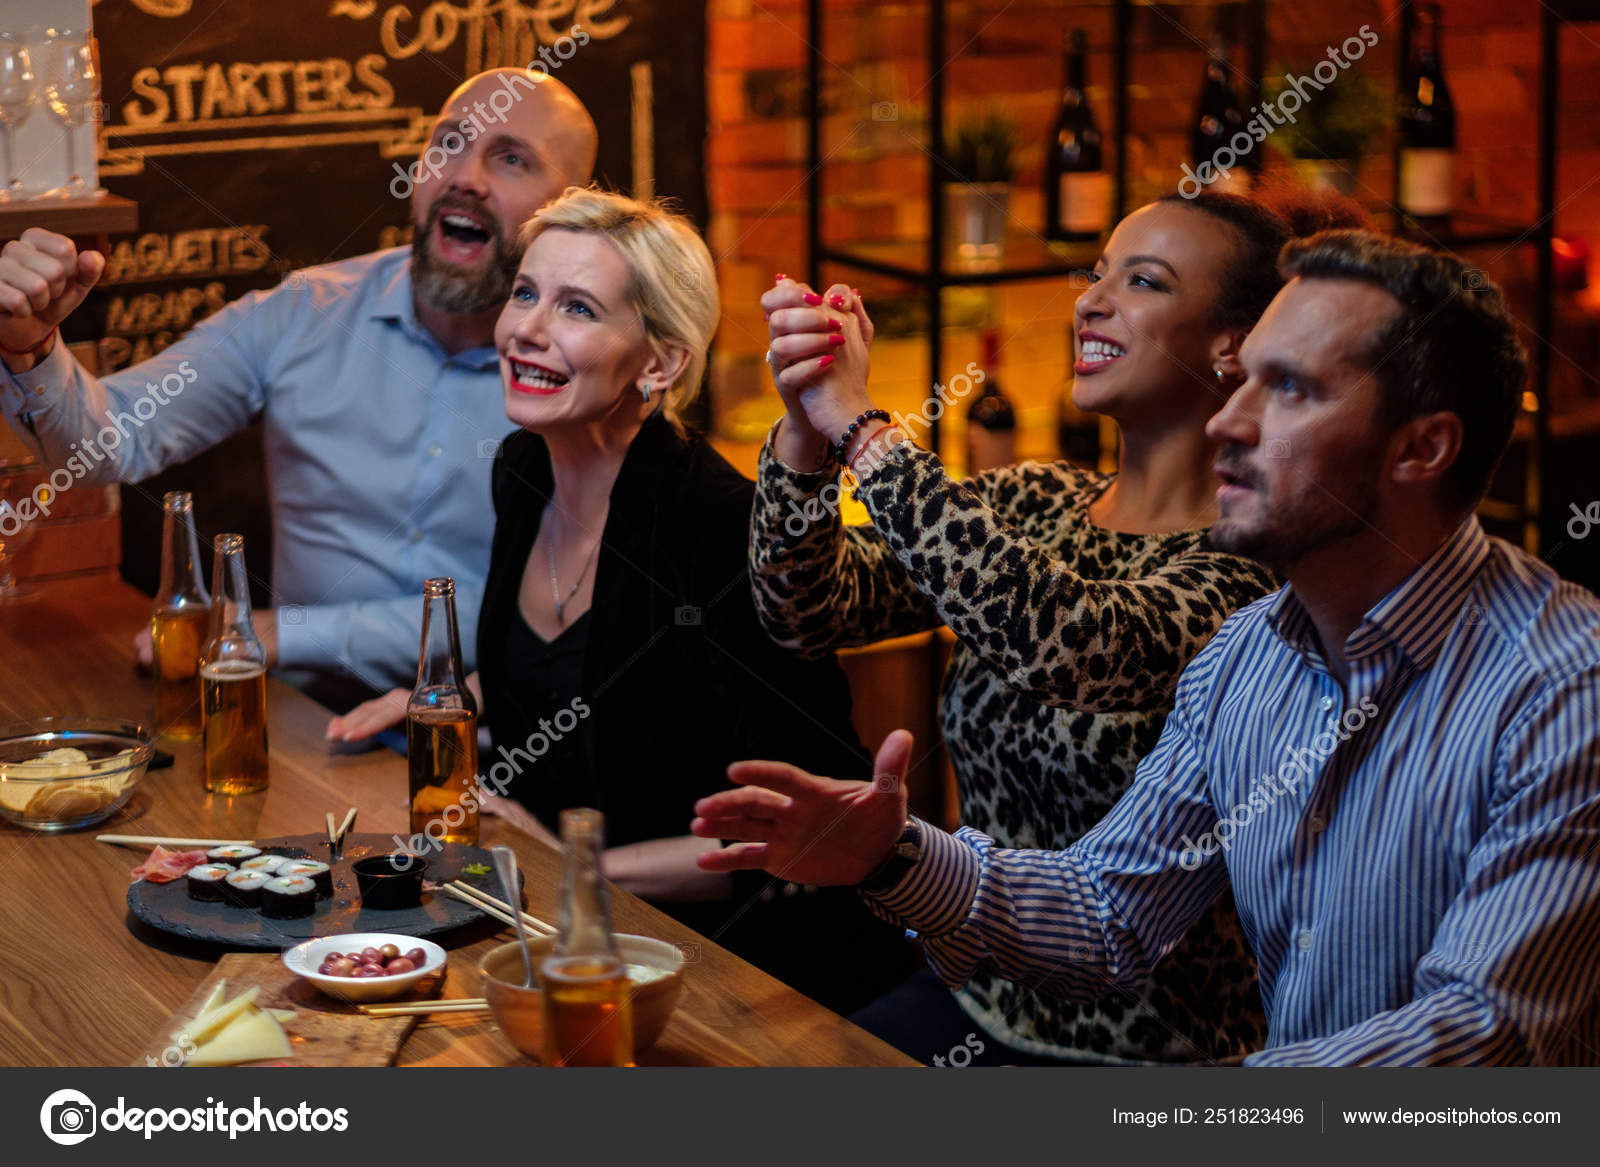 Group Of Friends Watching Tv In A Cafe Behind Bar Counter Stock Photo C Nejron 251823496